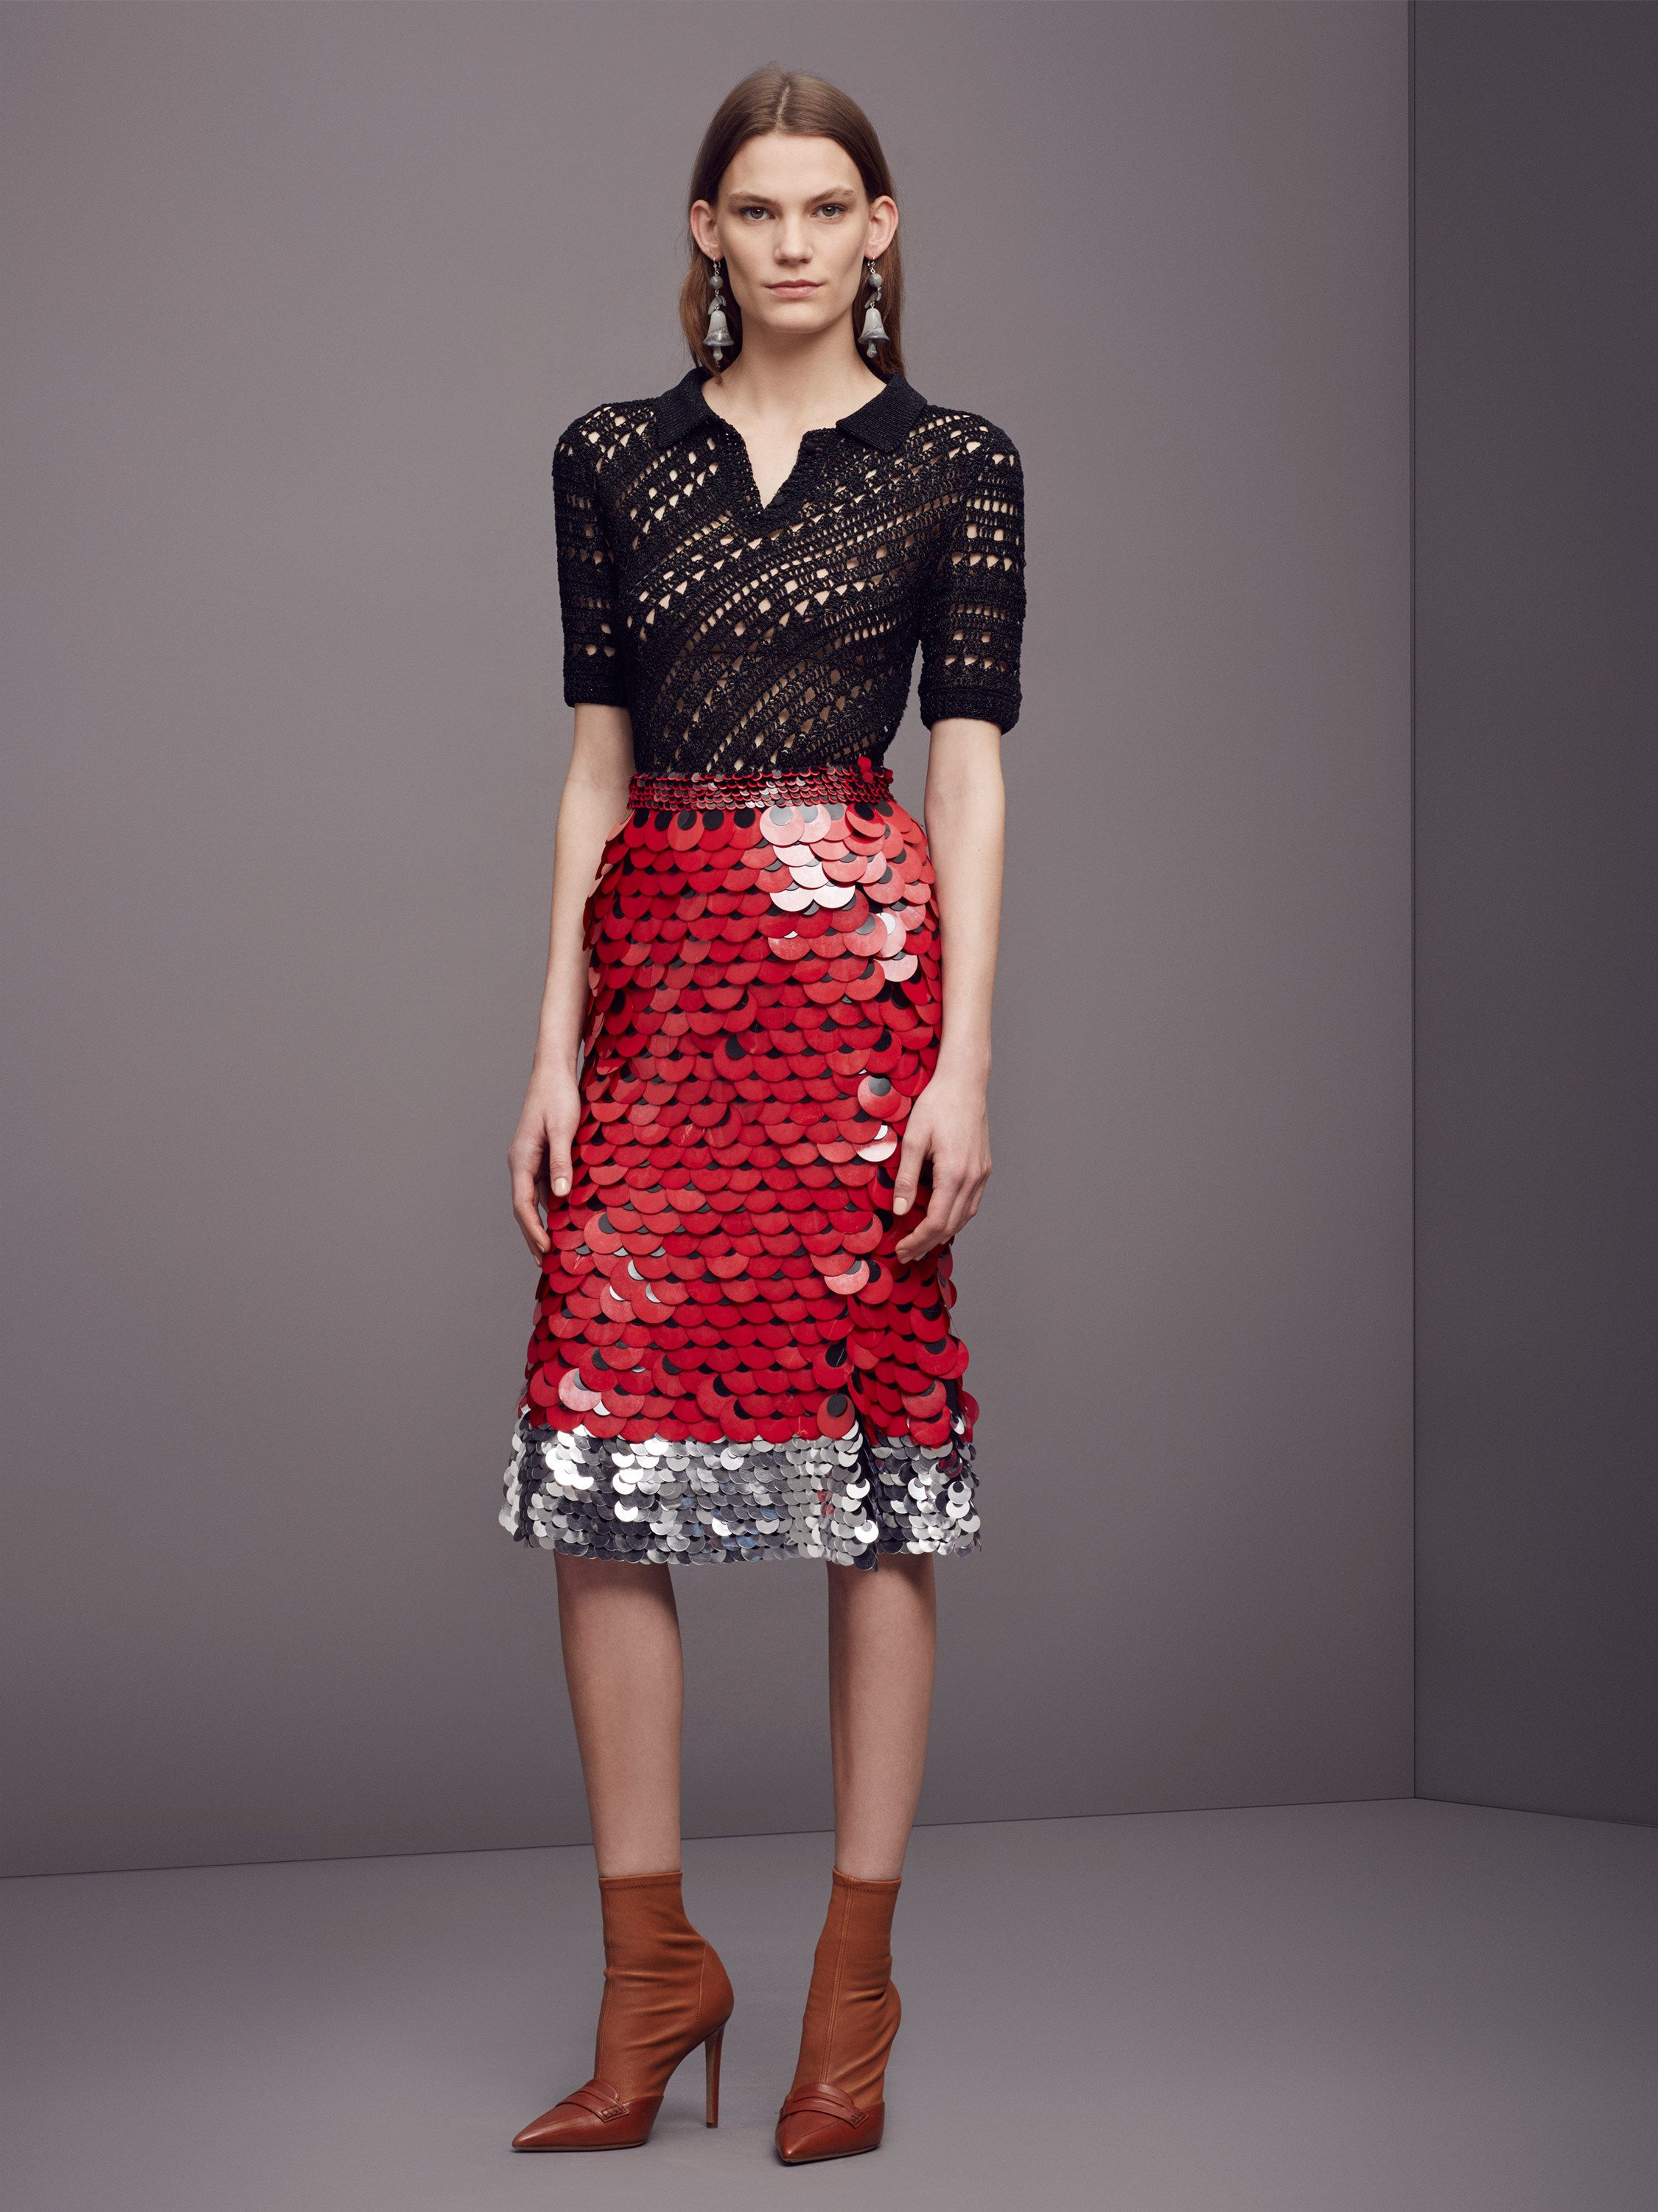 Black Short Sleeve Top Paired with a Red and Silver / Altuzarra Pre-Fall 2016 Collection Photos - Vogue